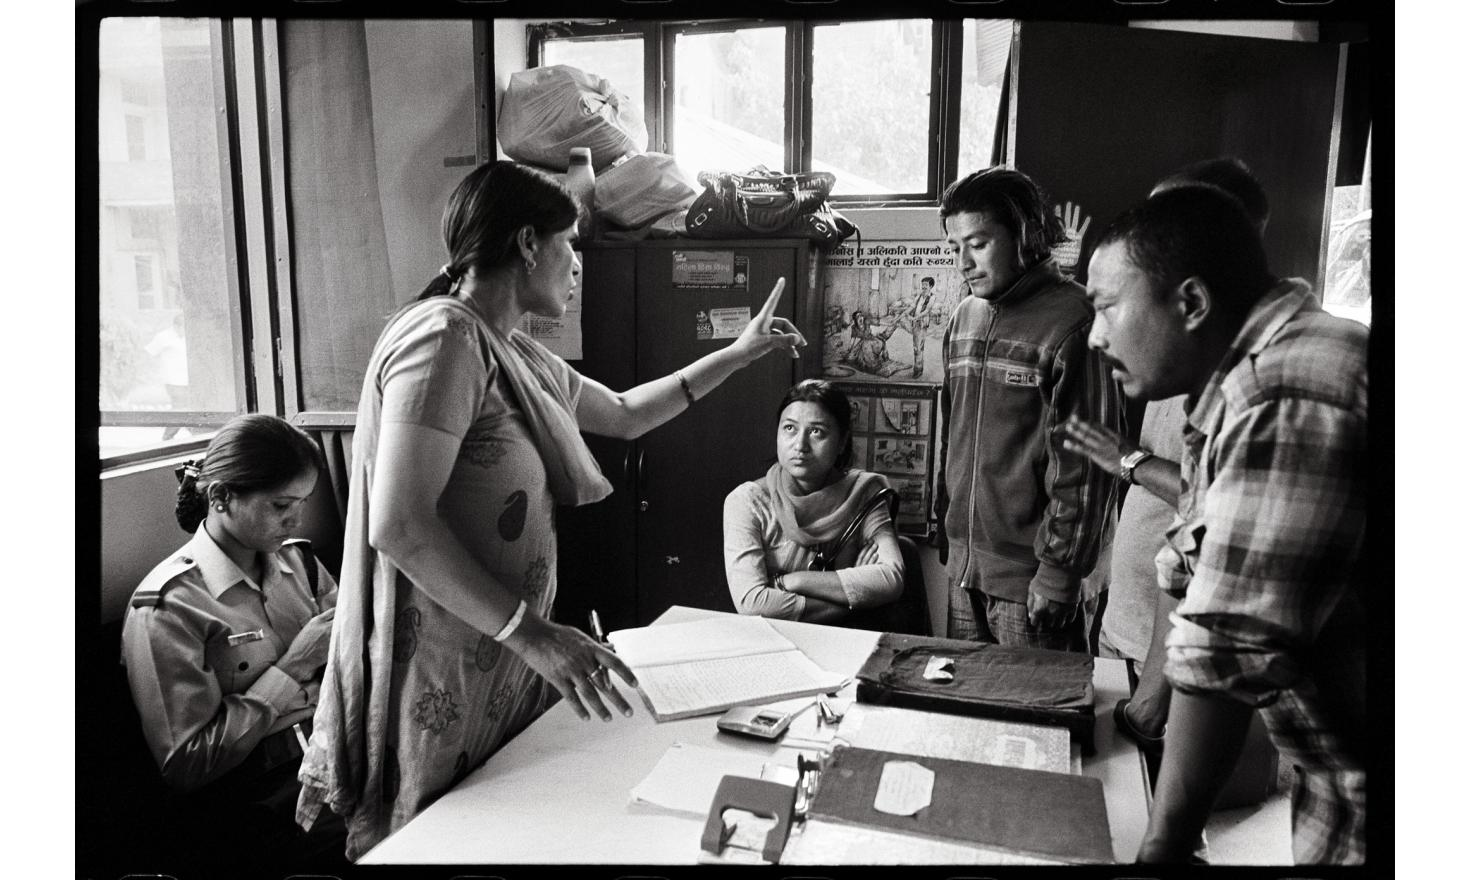 Kalimati, Kathmandu, Nepal.The Nepali government has created special units of female police in 23 out of its 75 districts. They help victims of violence to file a case. But these units get little support from the police hierarchy.